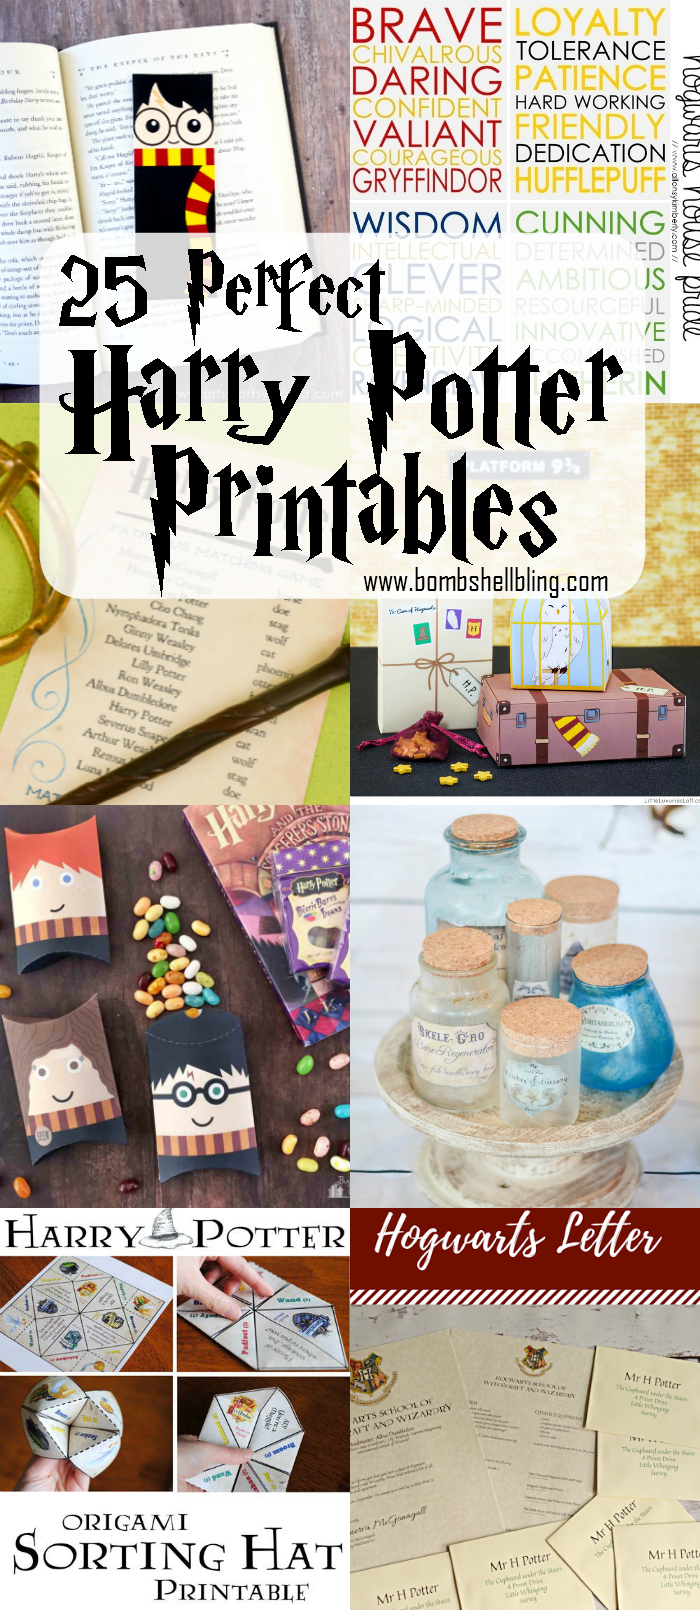 image about Printable Harry Potter Bookmarks identify 25 Suitable Harry Potter Printables - Gathered as a result of Bombs